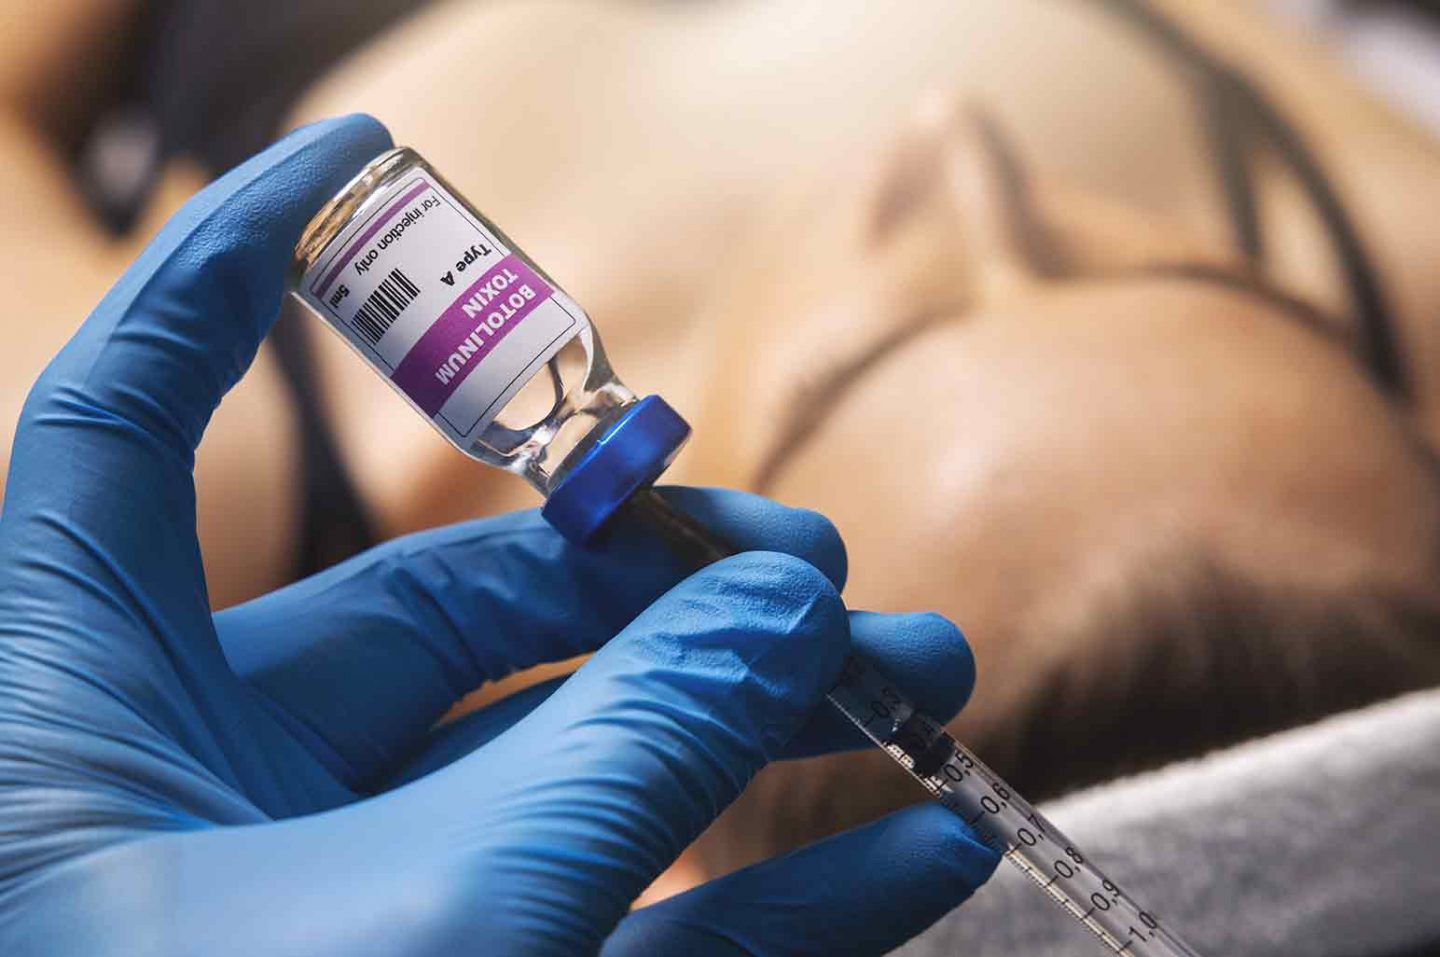 Botox: What Is It And How Does It Work